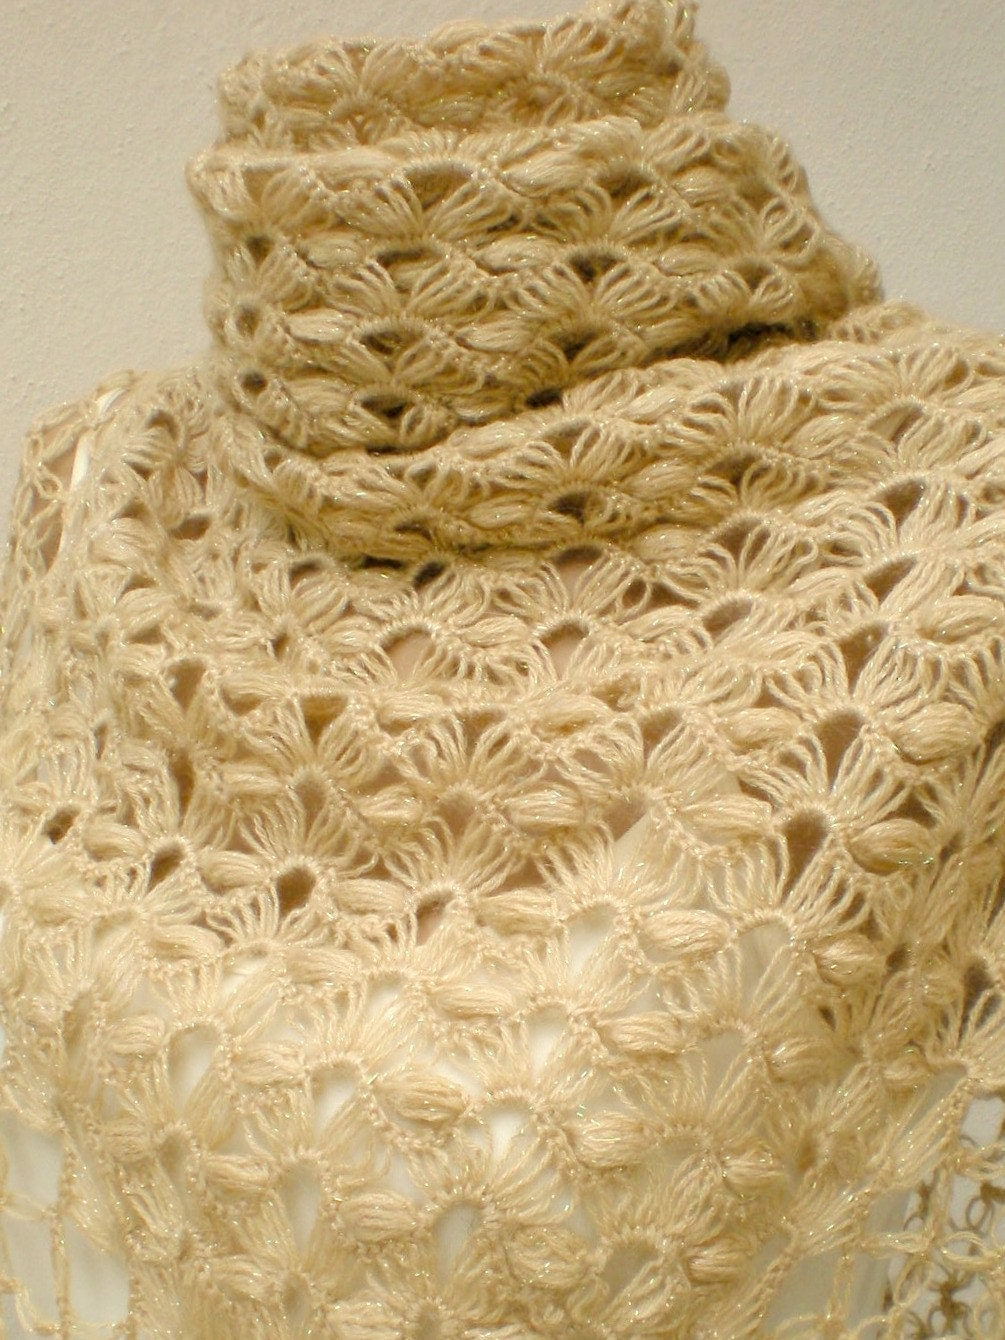 On Sale Crochet Hand Crocheted Shining Beige by crochetbutterfly